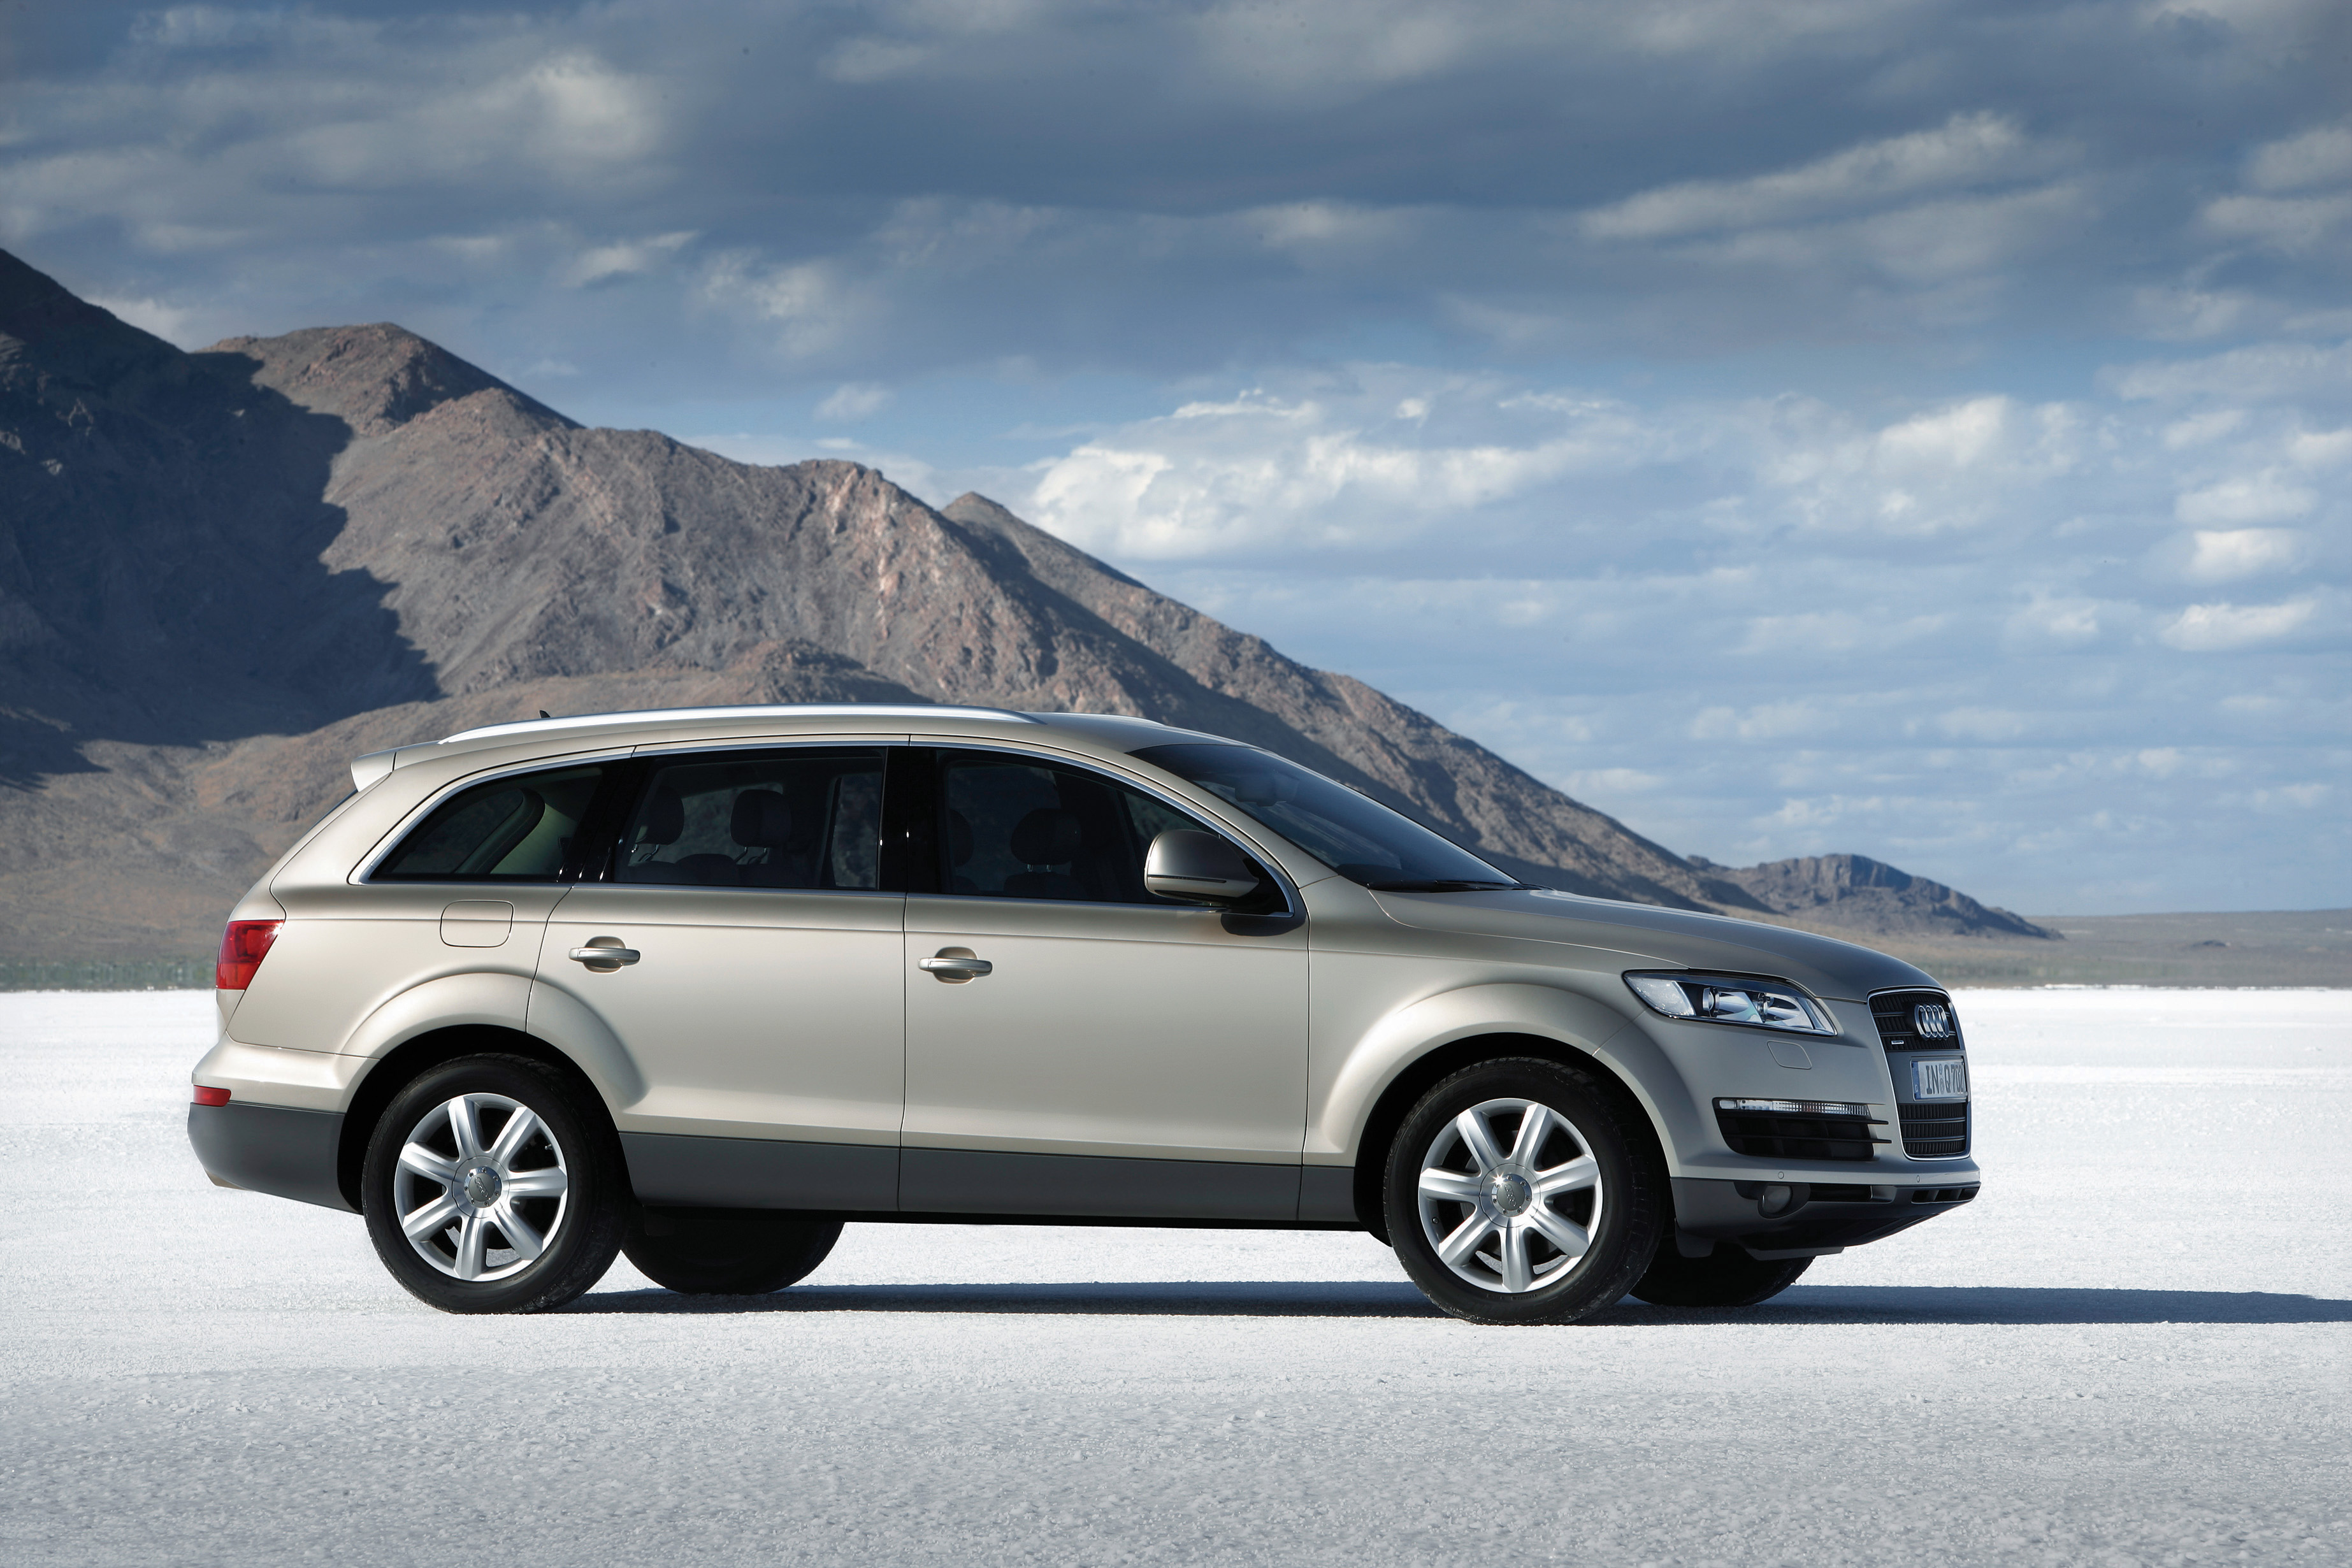 Audi q7 2004 review amazing pictures and images look at the car